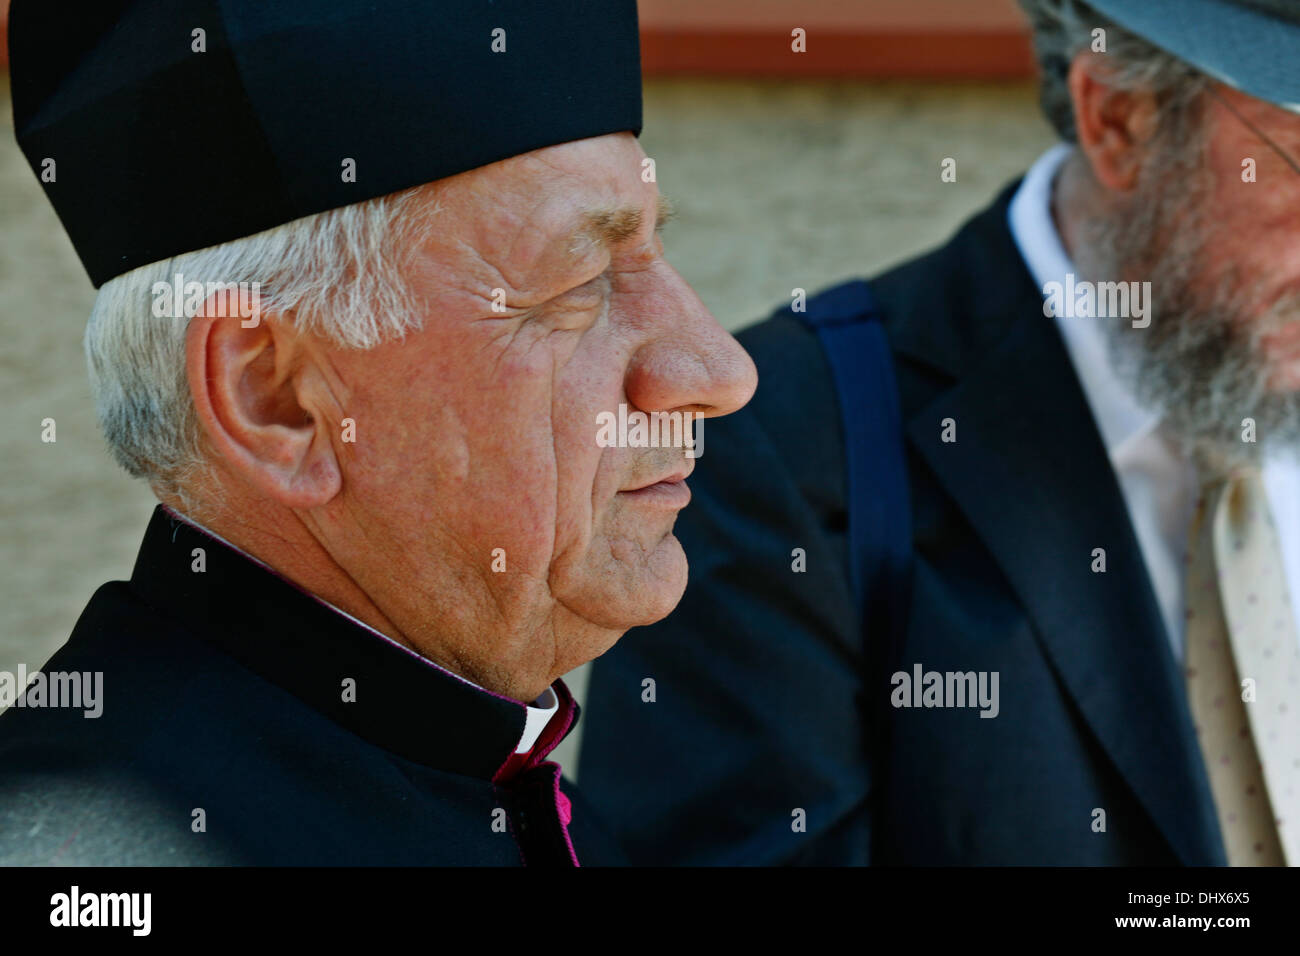 Deacon of the Brzostek Parish, Fr. Dr Jan Cebulak, at the re-consecration of Brzostek's Jewish cemetery - Stock Image